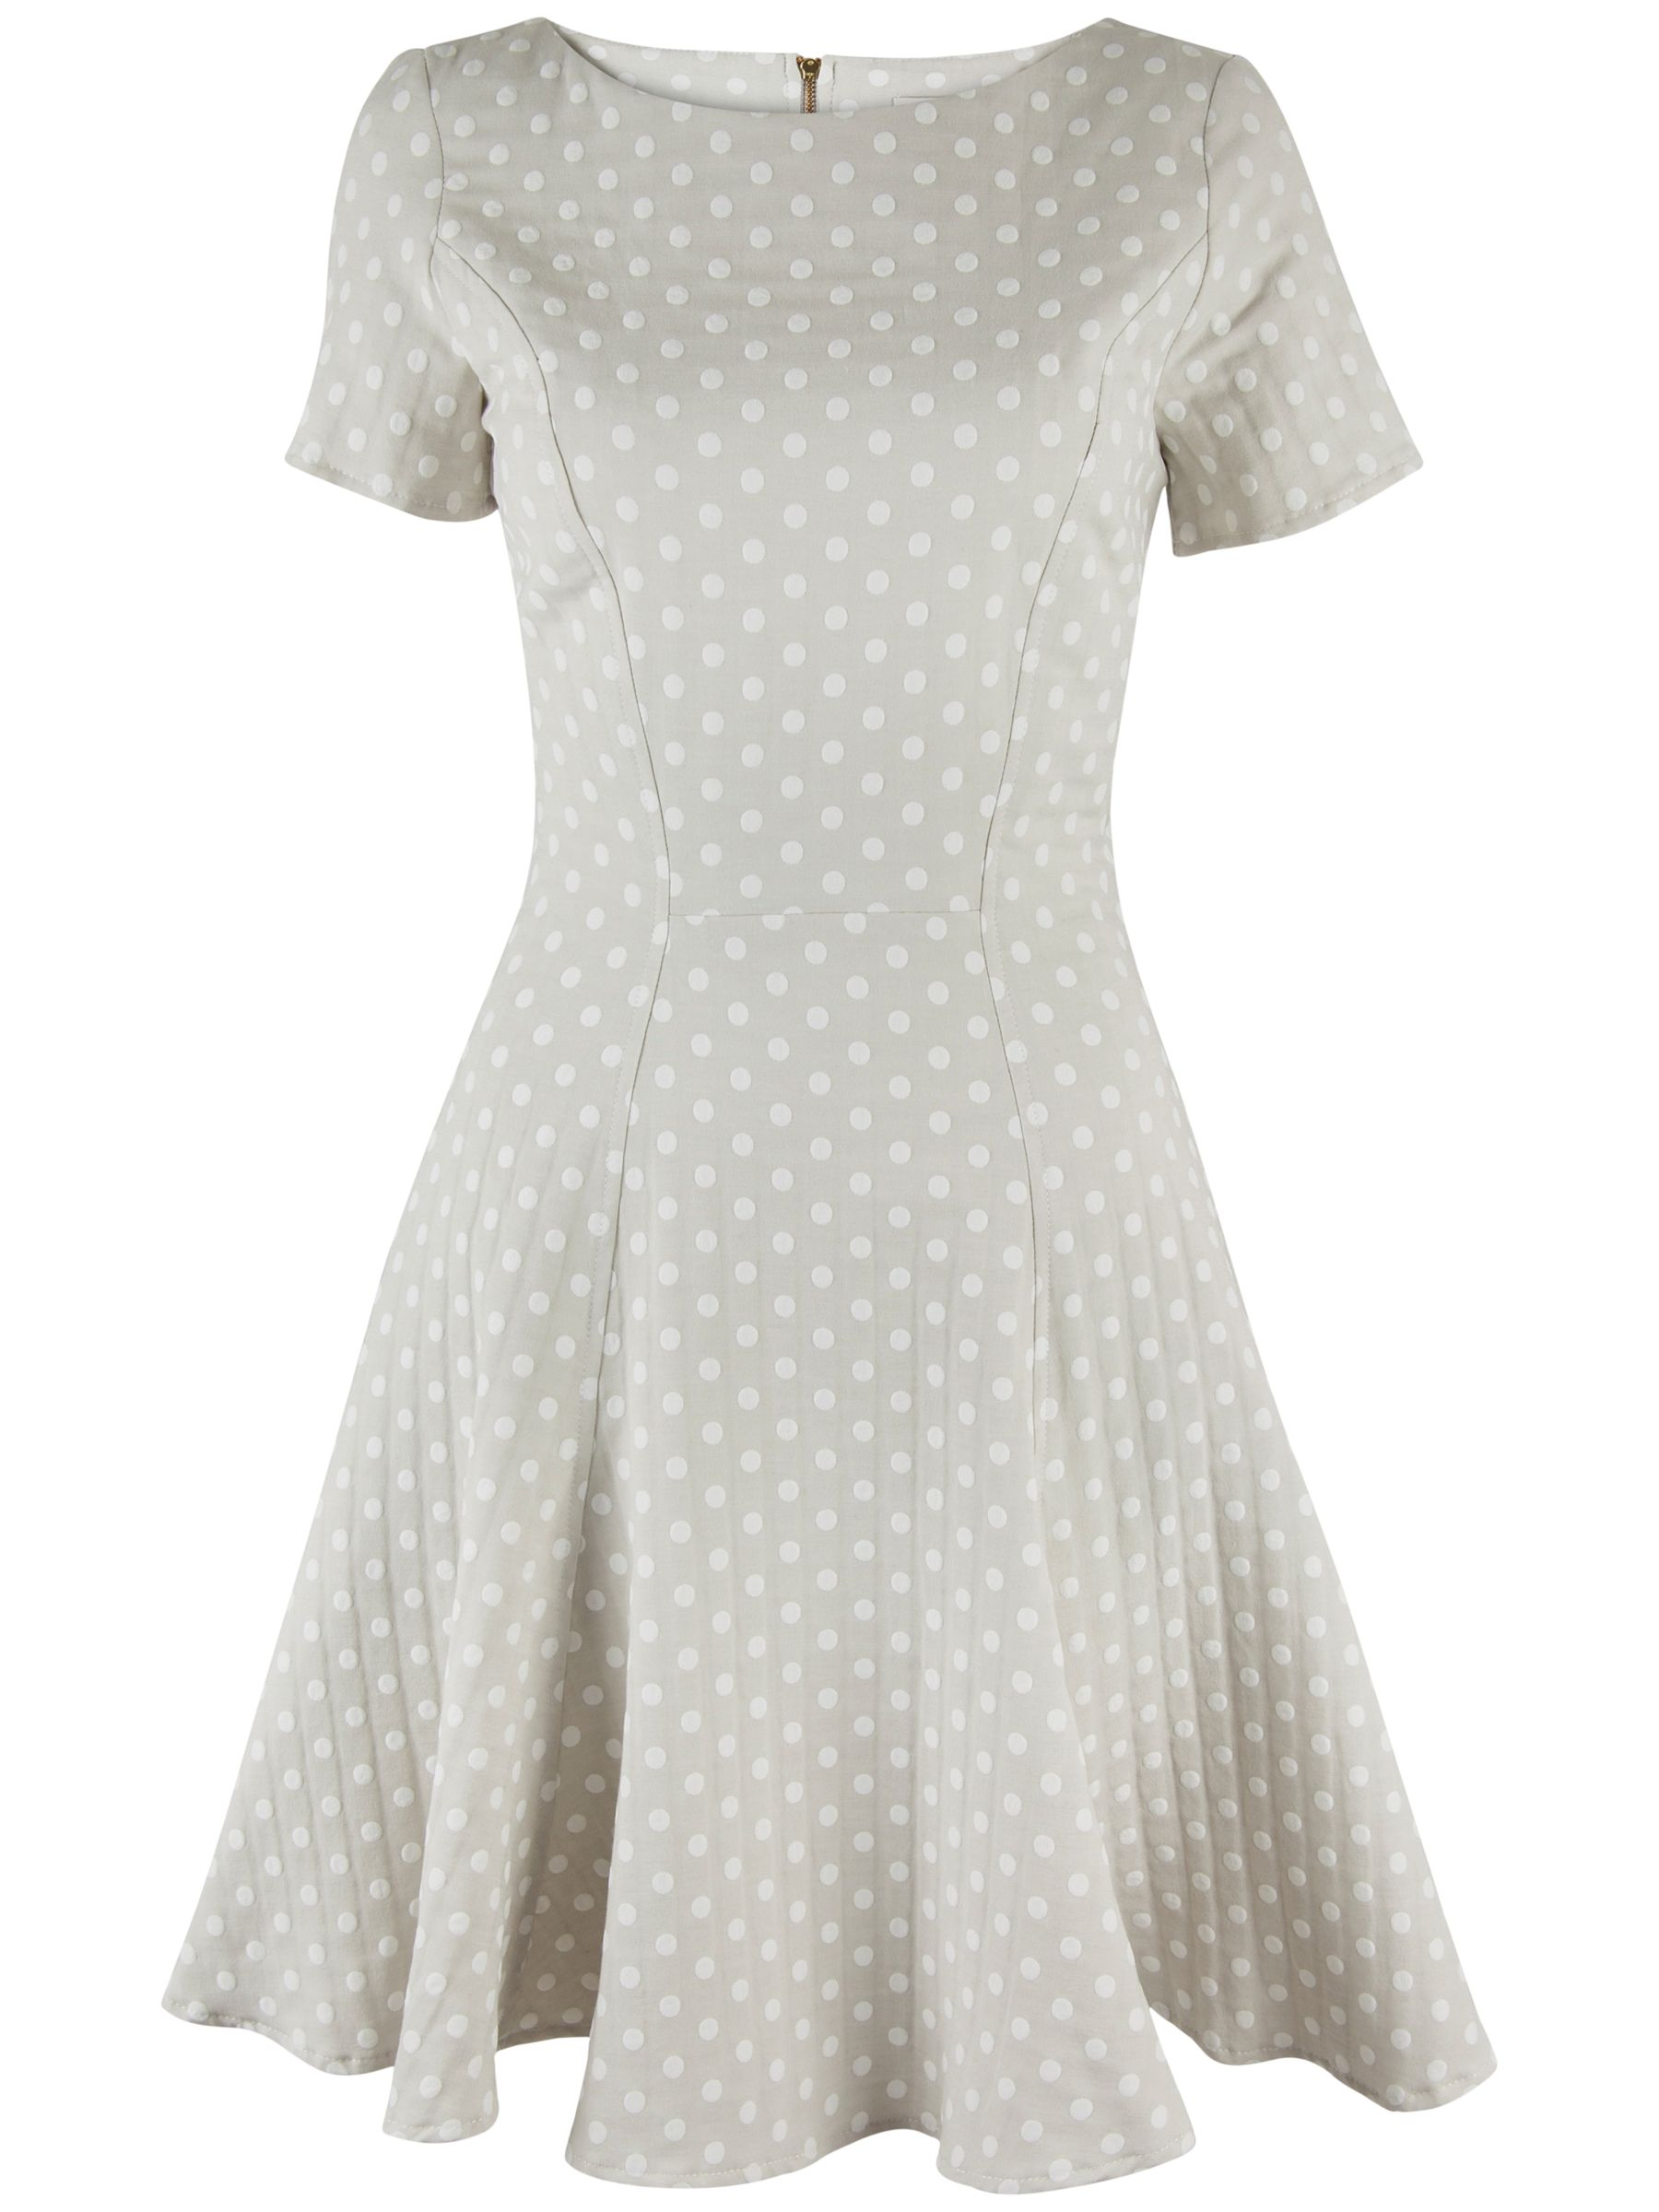 almari polka dot a-line dress stone, almari, polka, dot, a-line, dress, stone, 16|14|10|12|8, women, womens dresses, 1921353